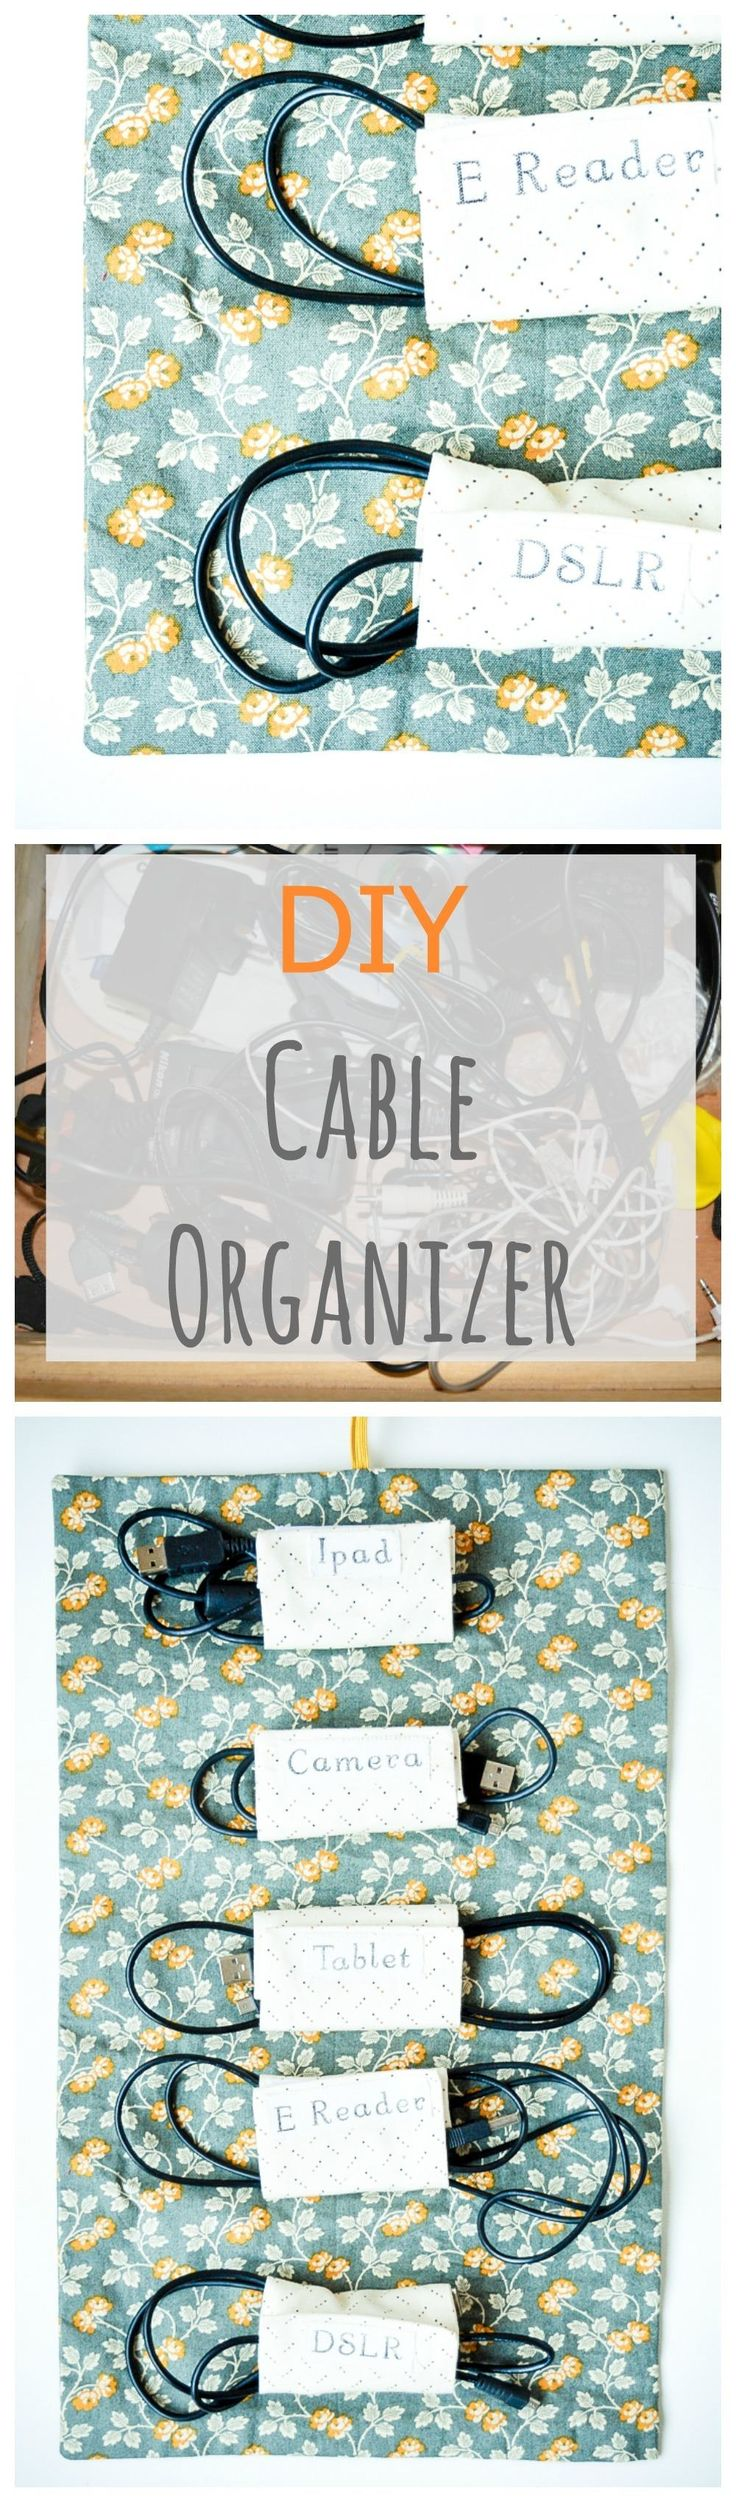 Fabric Cable Tidy, Cable Roll DIY - Tidy your cables with this organizer